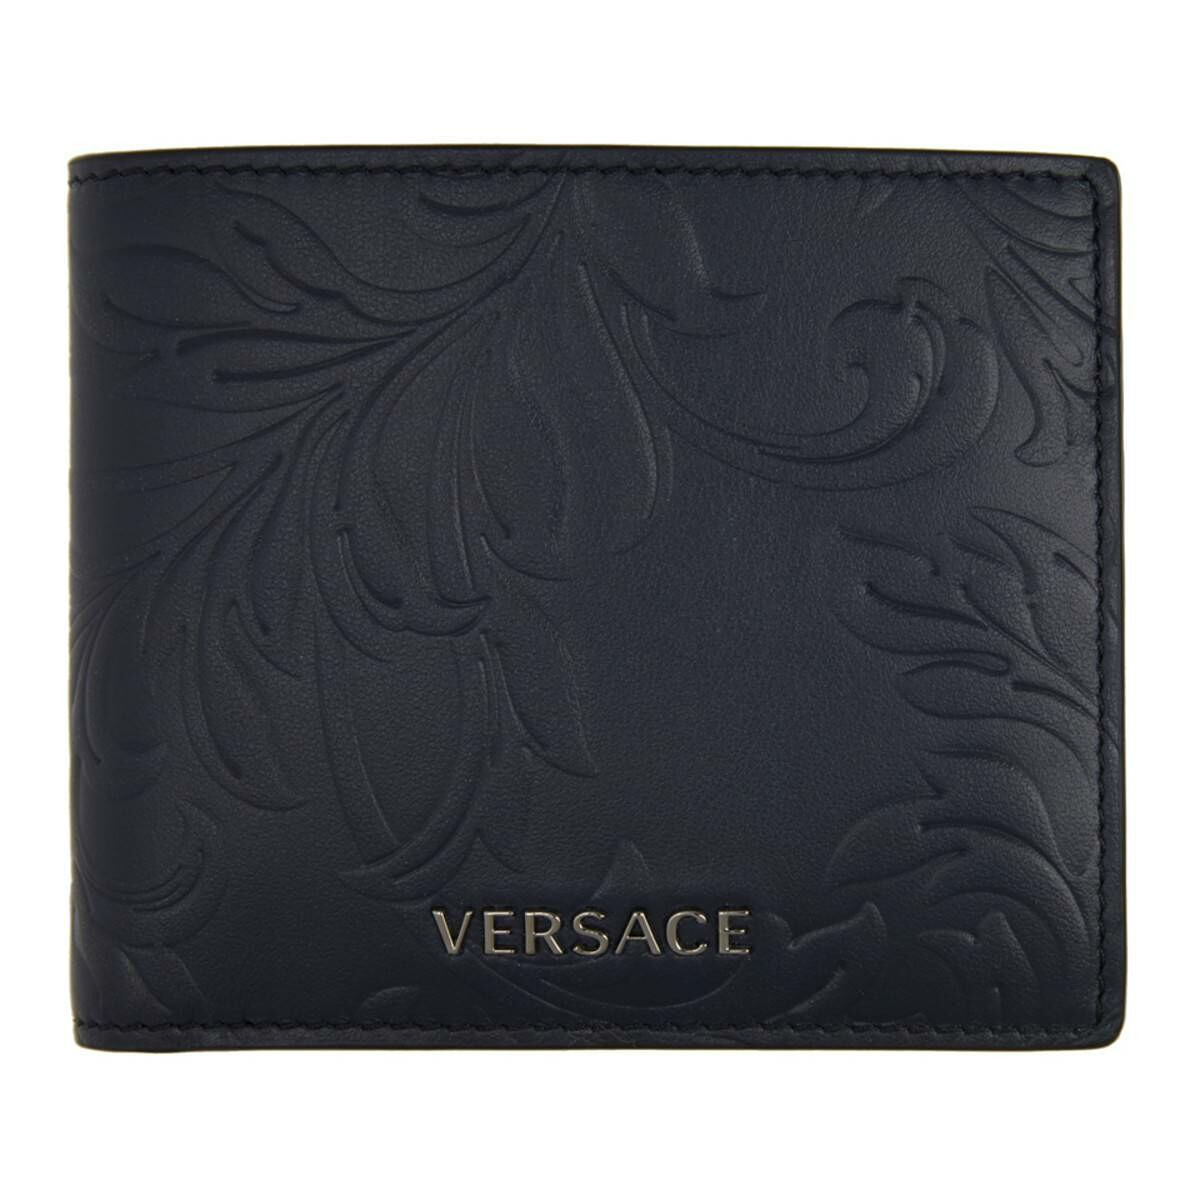 Versace Navy Embossed Barocco Bifold Wallet Ssense USA MEN Men ACCESSORIES Mens WALLETS